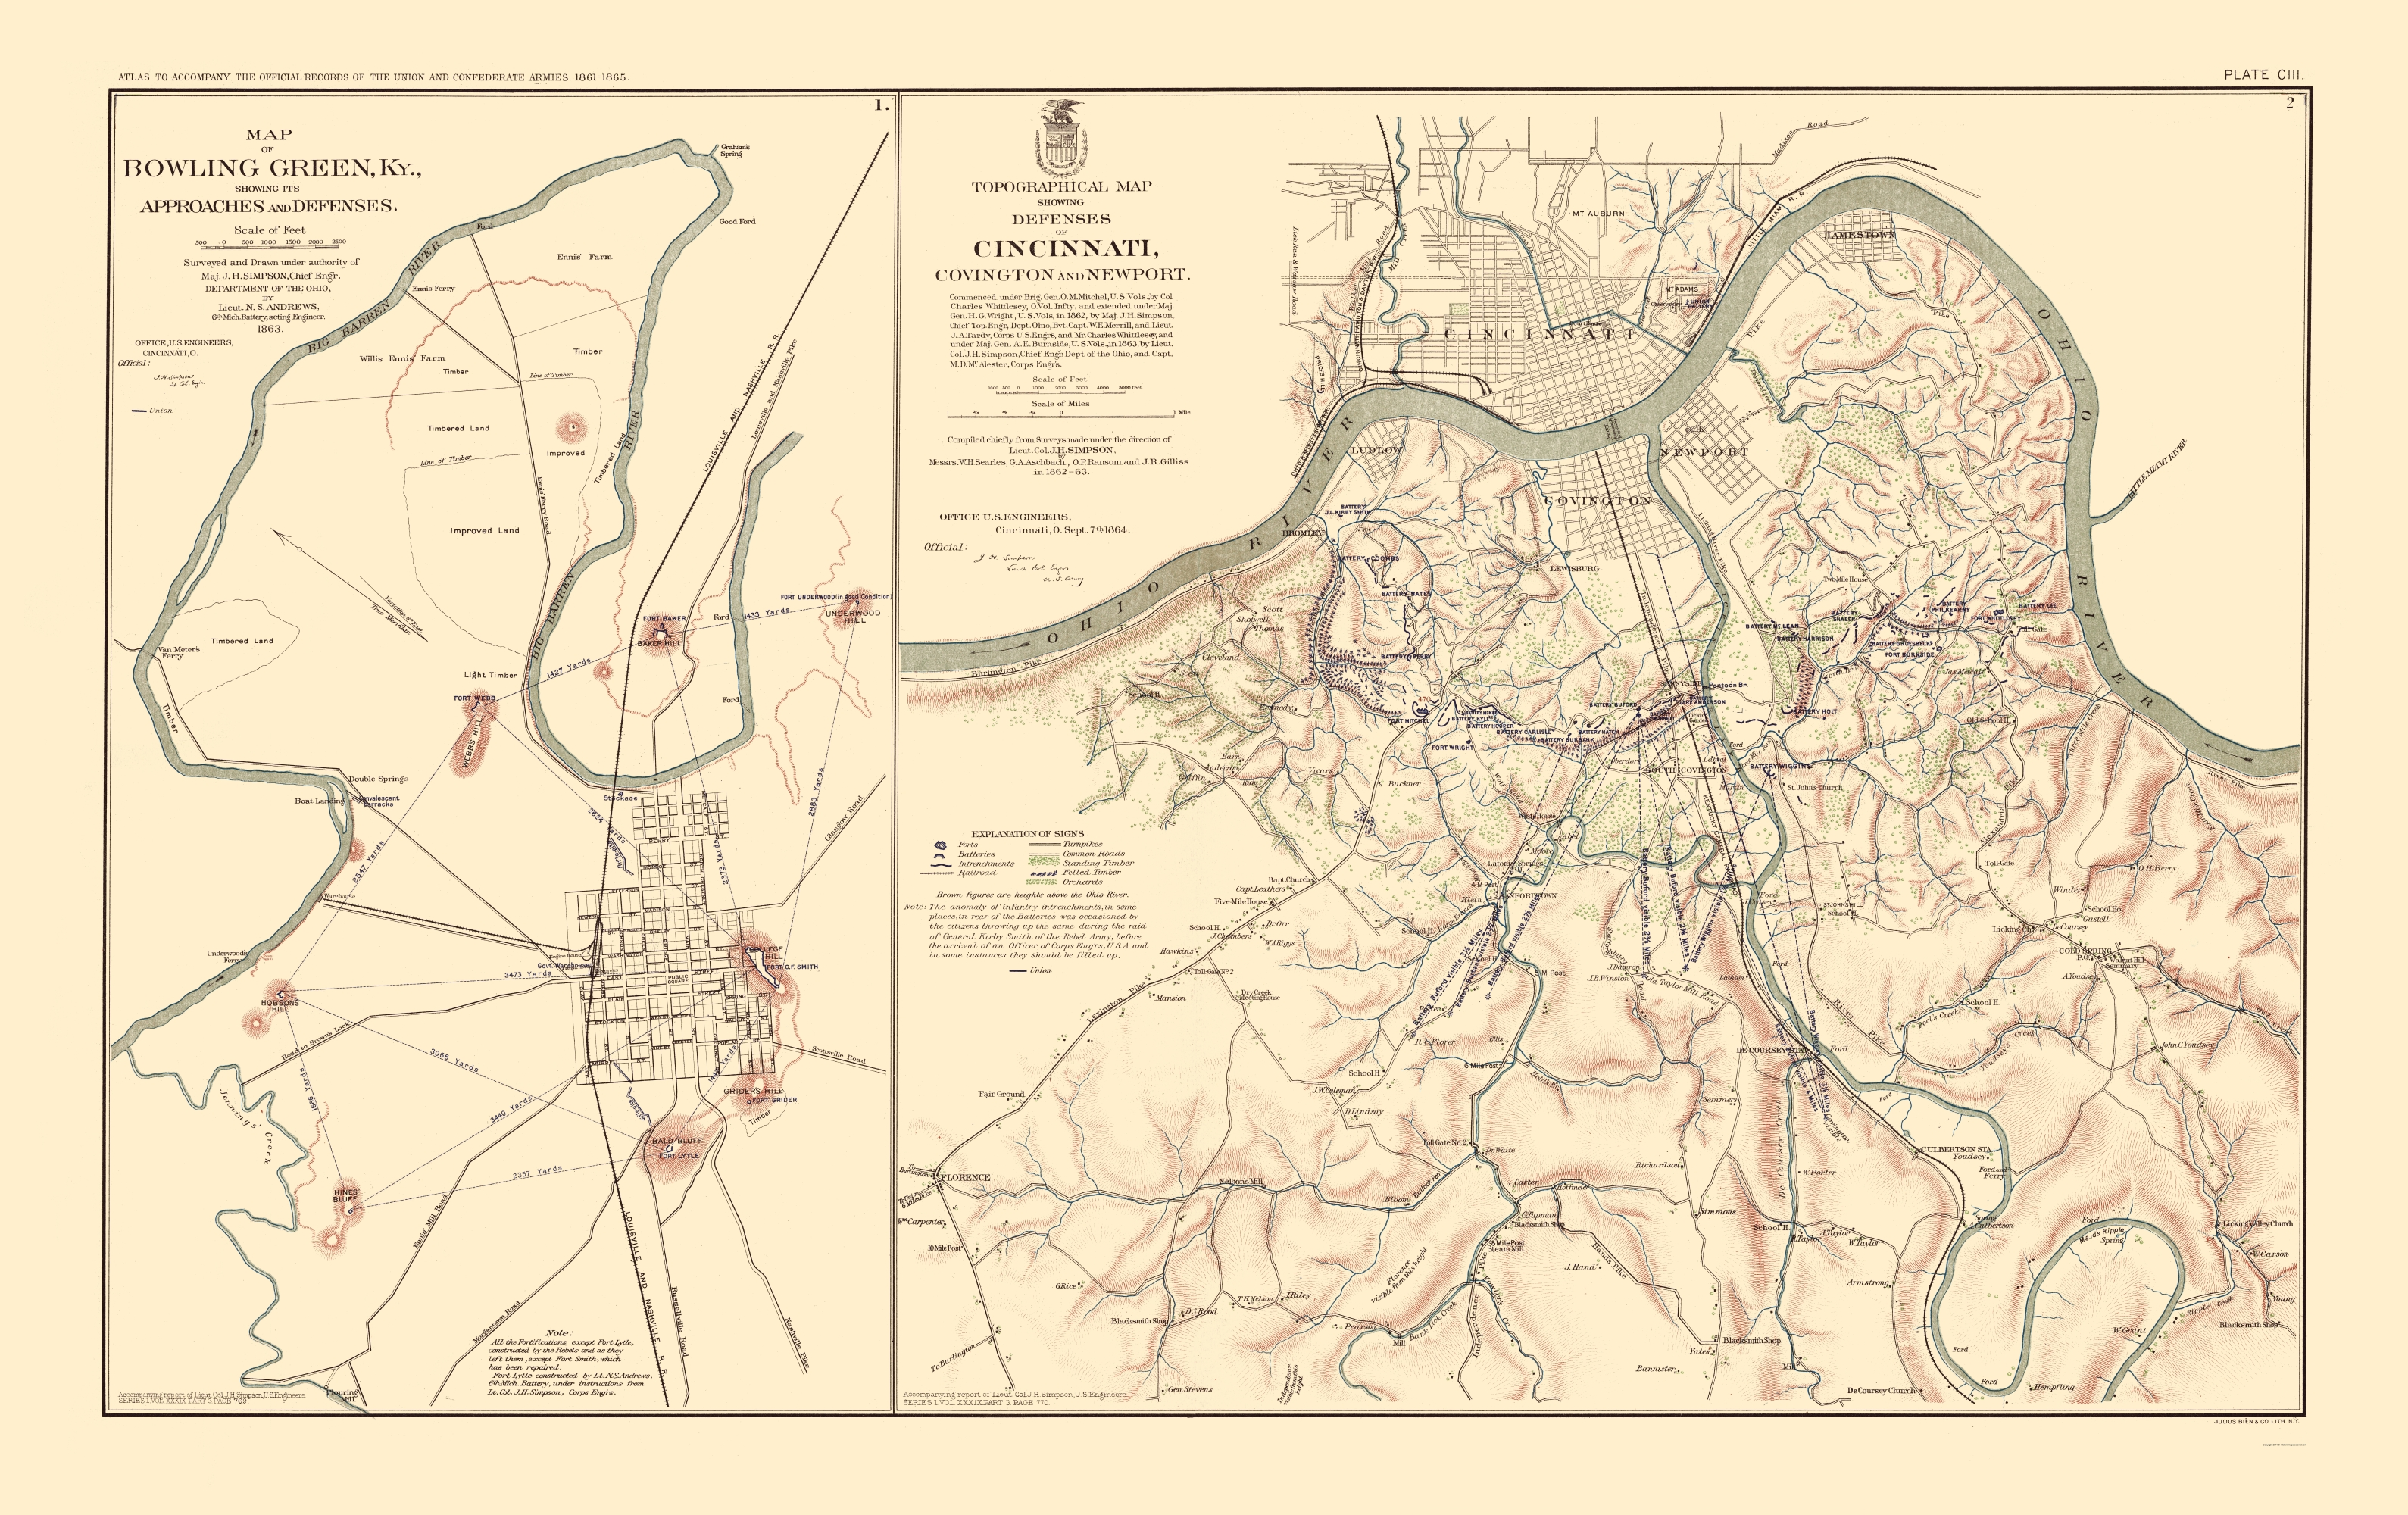 Civil War Map Bowling Green Defenses Approaches 1895